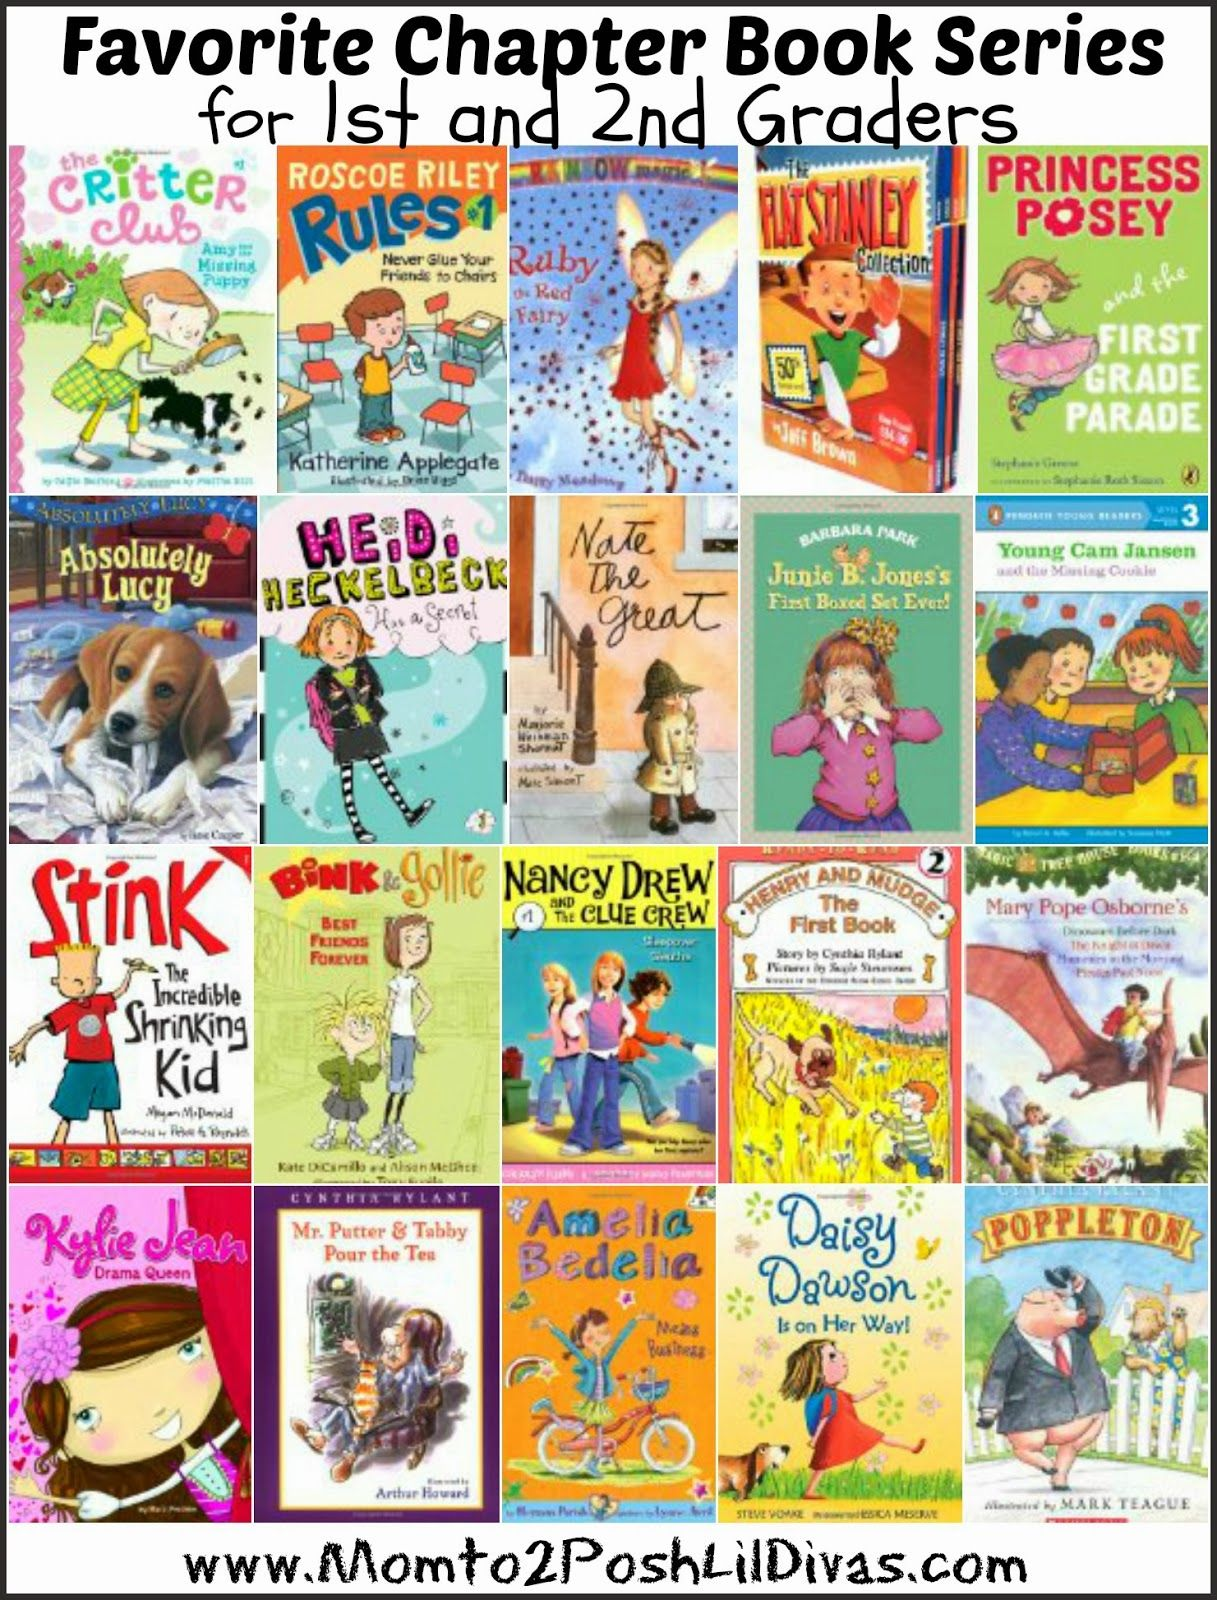 worksheet 2nd Grade Reading Books 20 chapter books perfect for first and second grade encourage 1st 2nd graders to